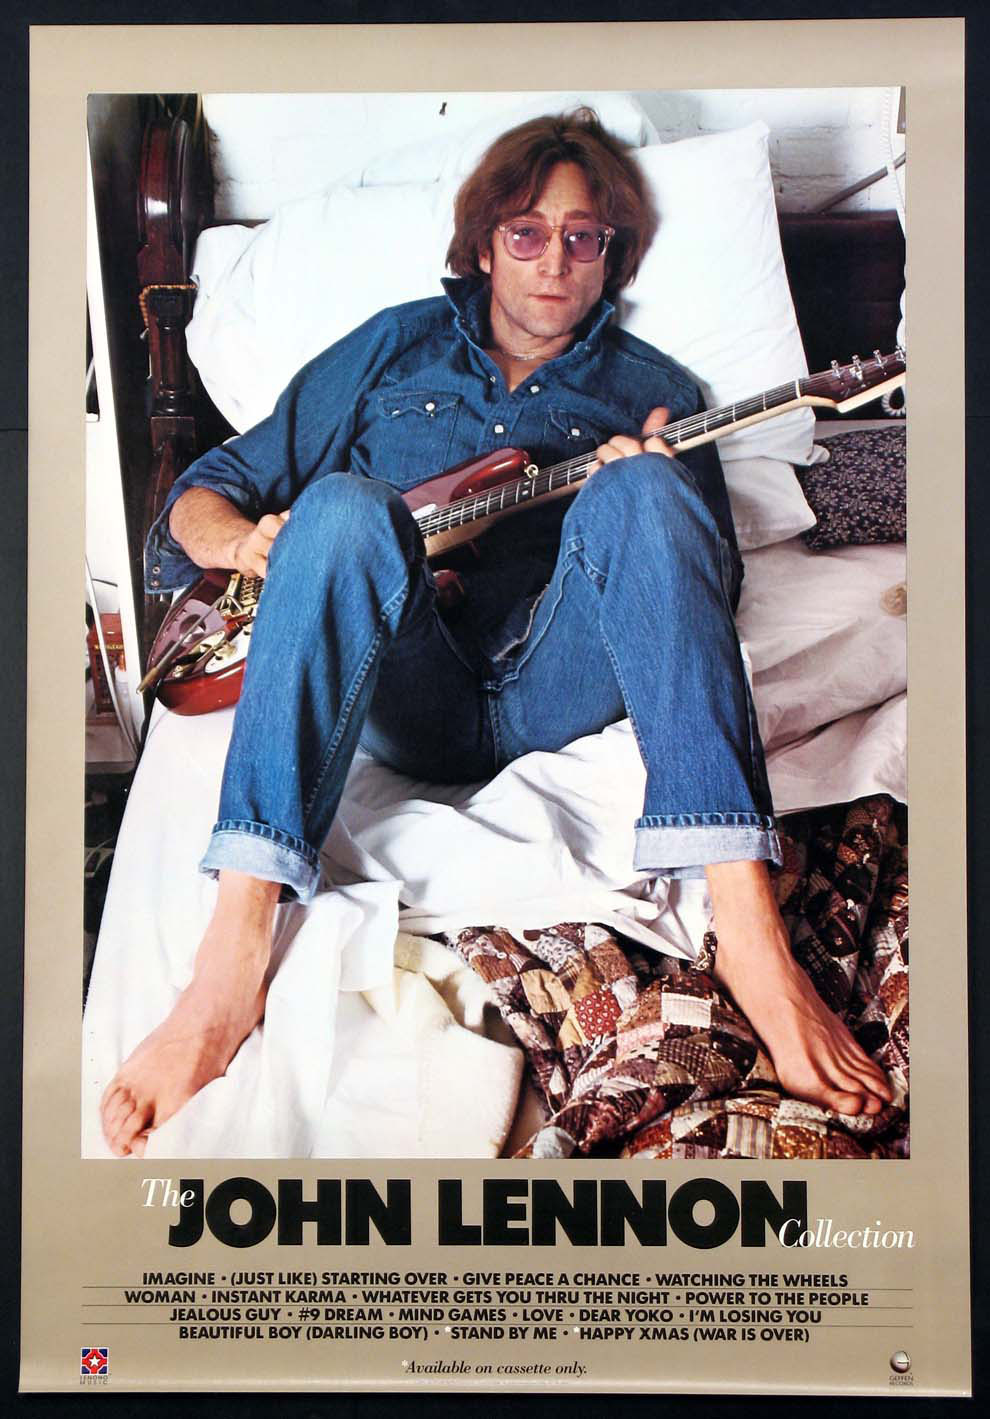 JOHN LENNON COLLECTION ALBUM ORIGINAL PROMOTIONAL POSTER @ FilmPosters.com